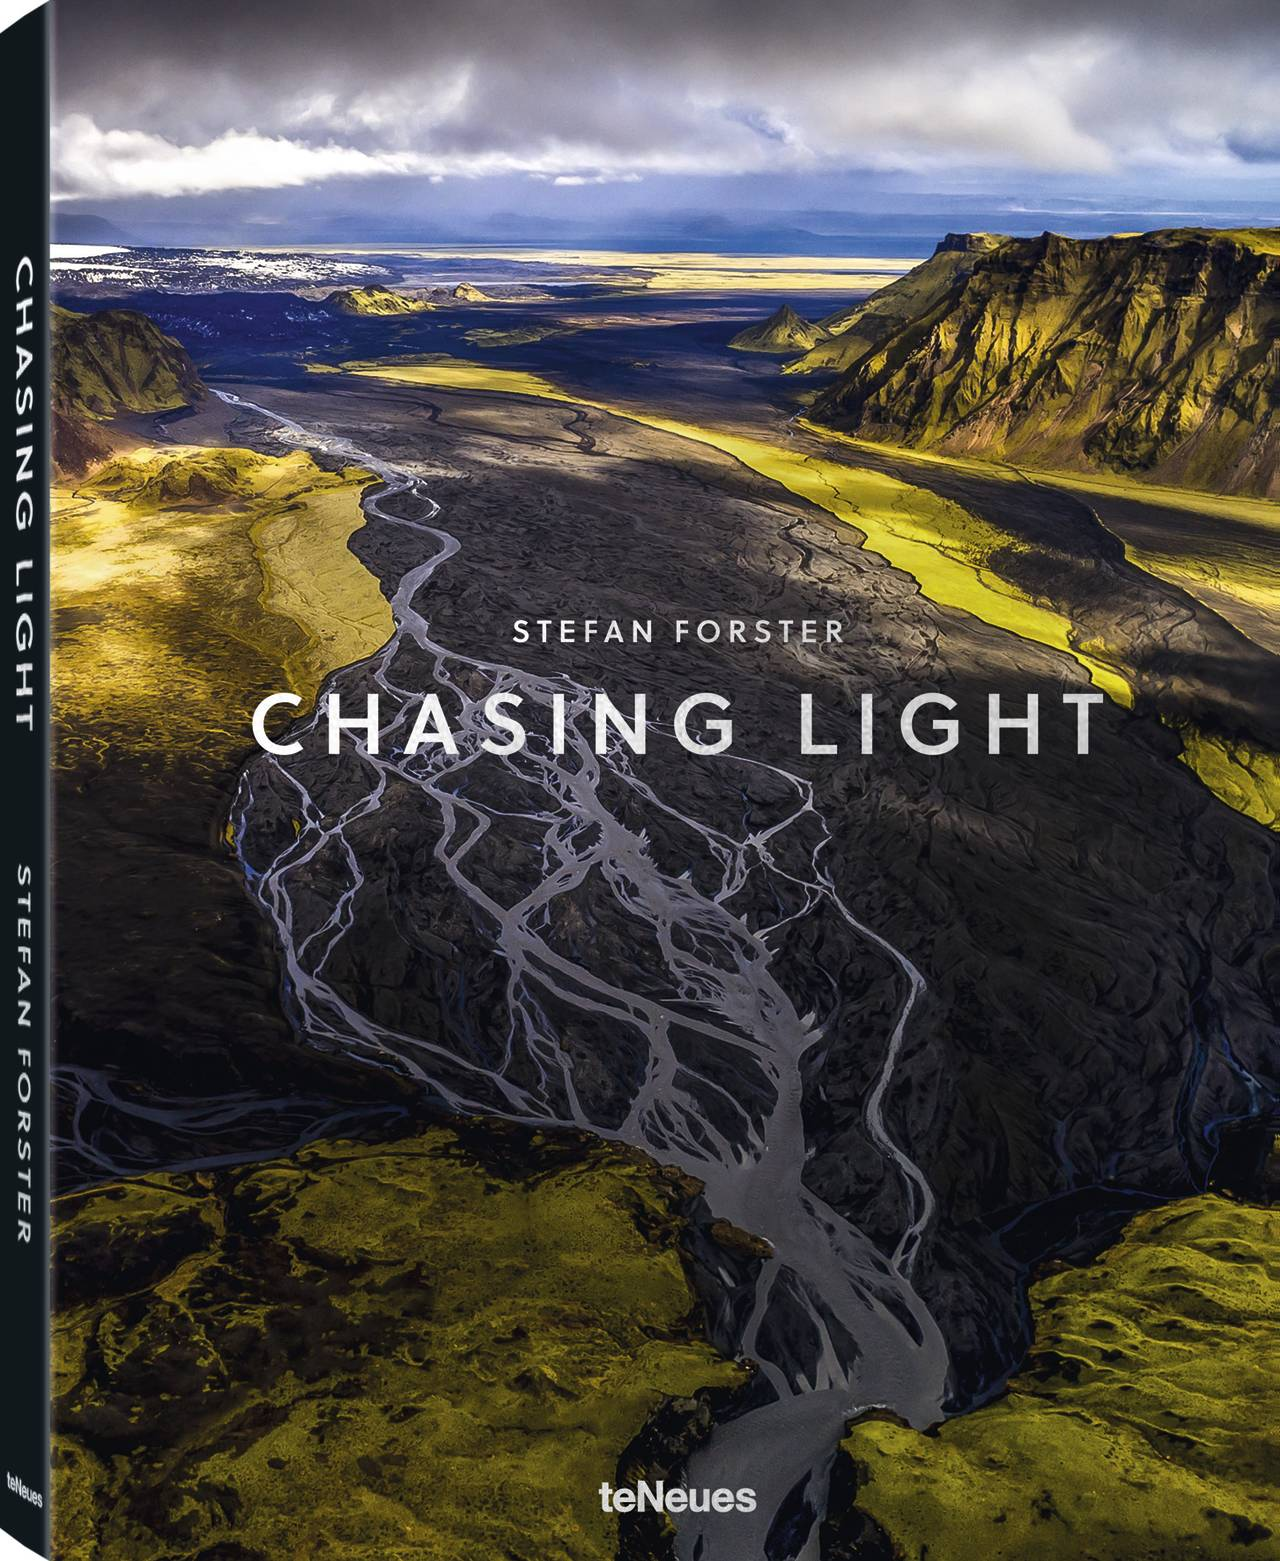 © Chasing Light by Stefan Forster, published by teNeues, www.teneues.com, Photo © 2017 Stefan Forster. All rights reserved. www.stefanforster.com